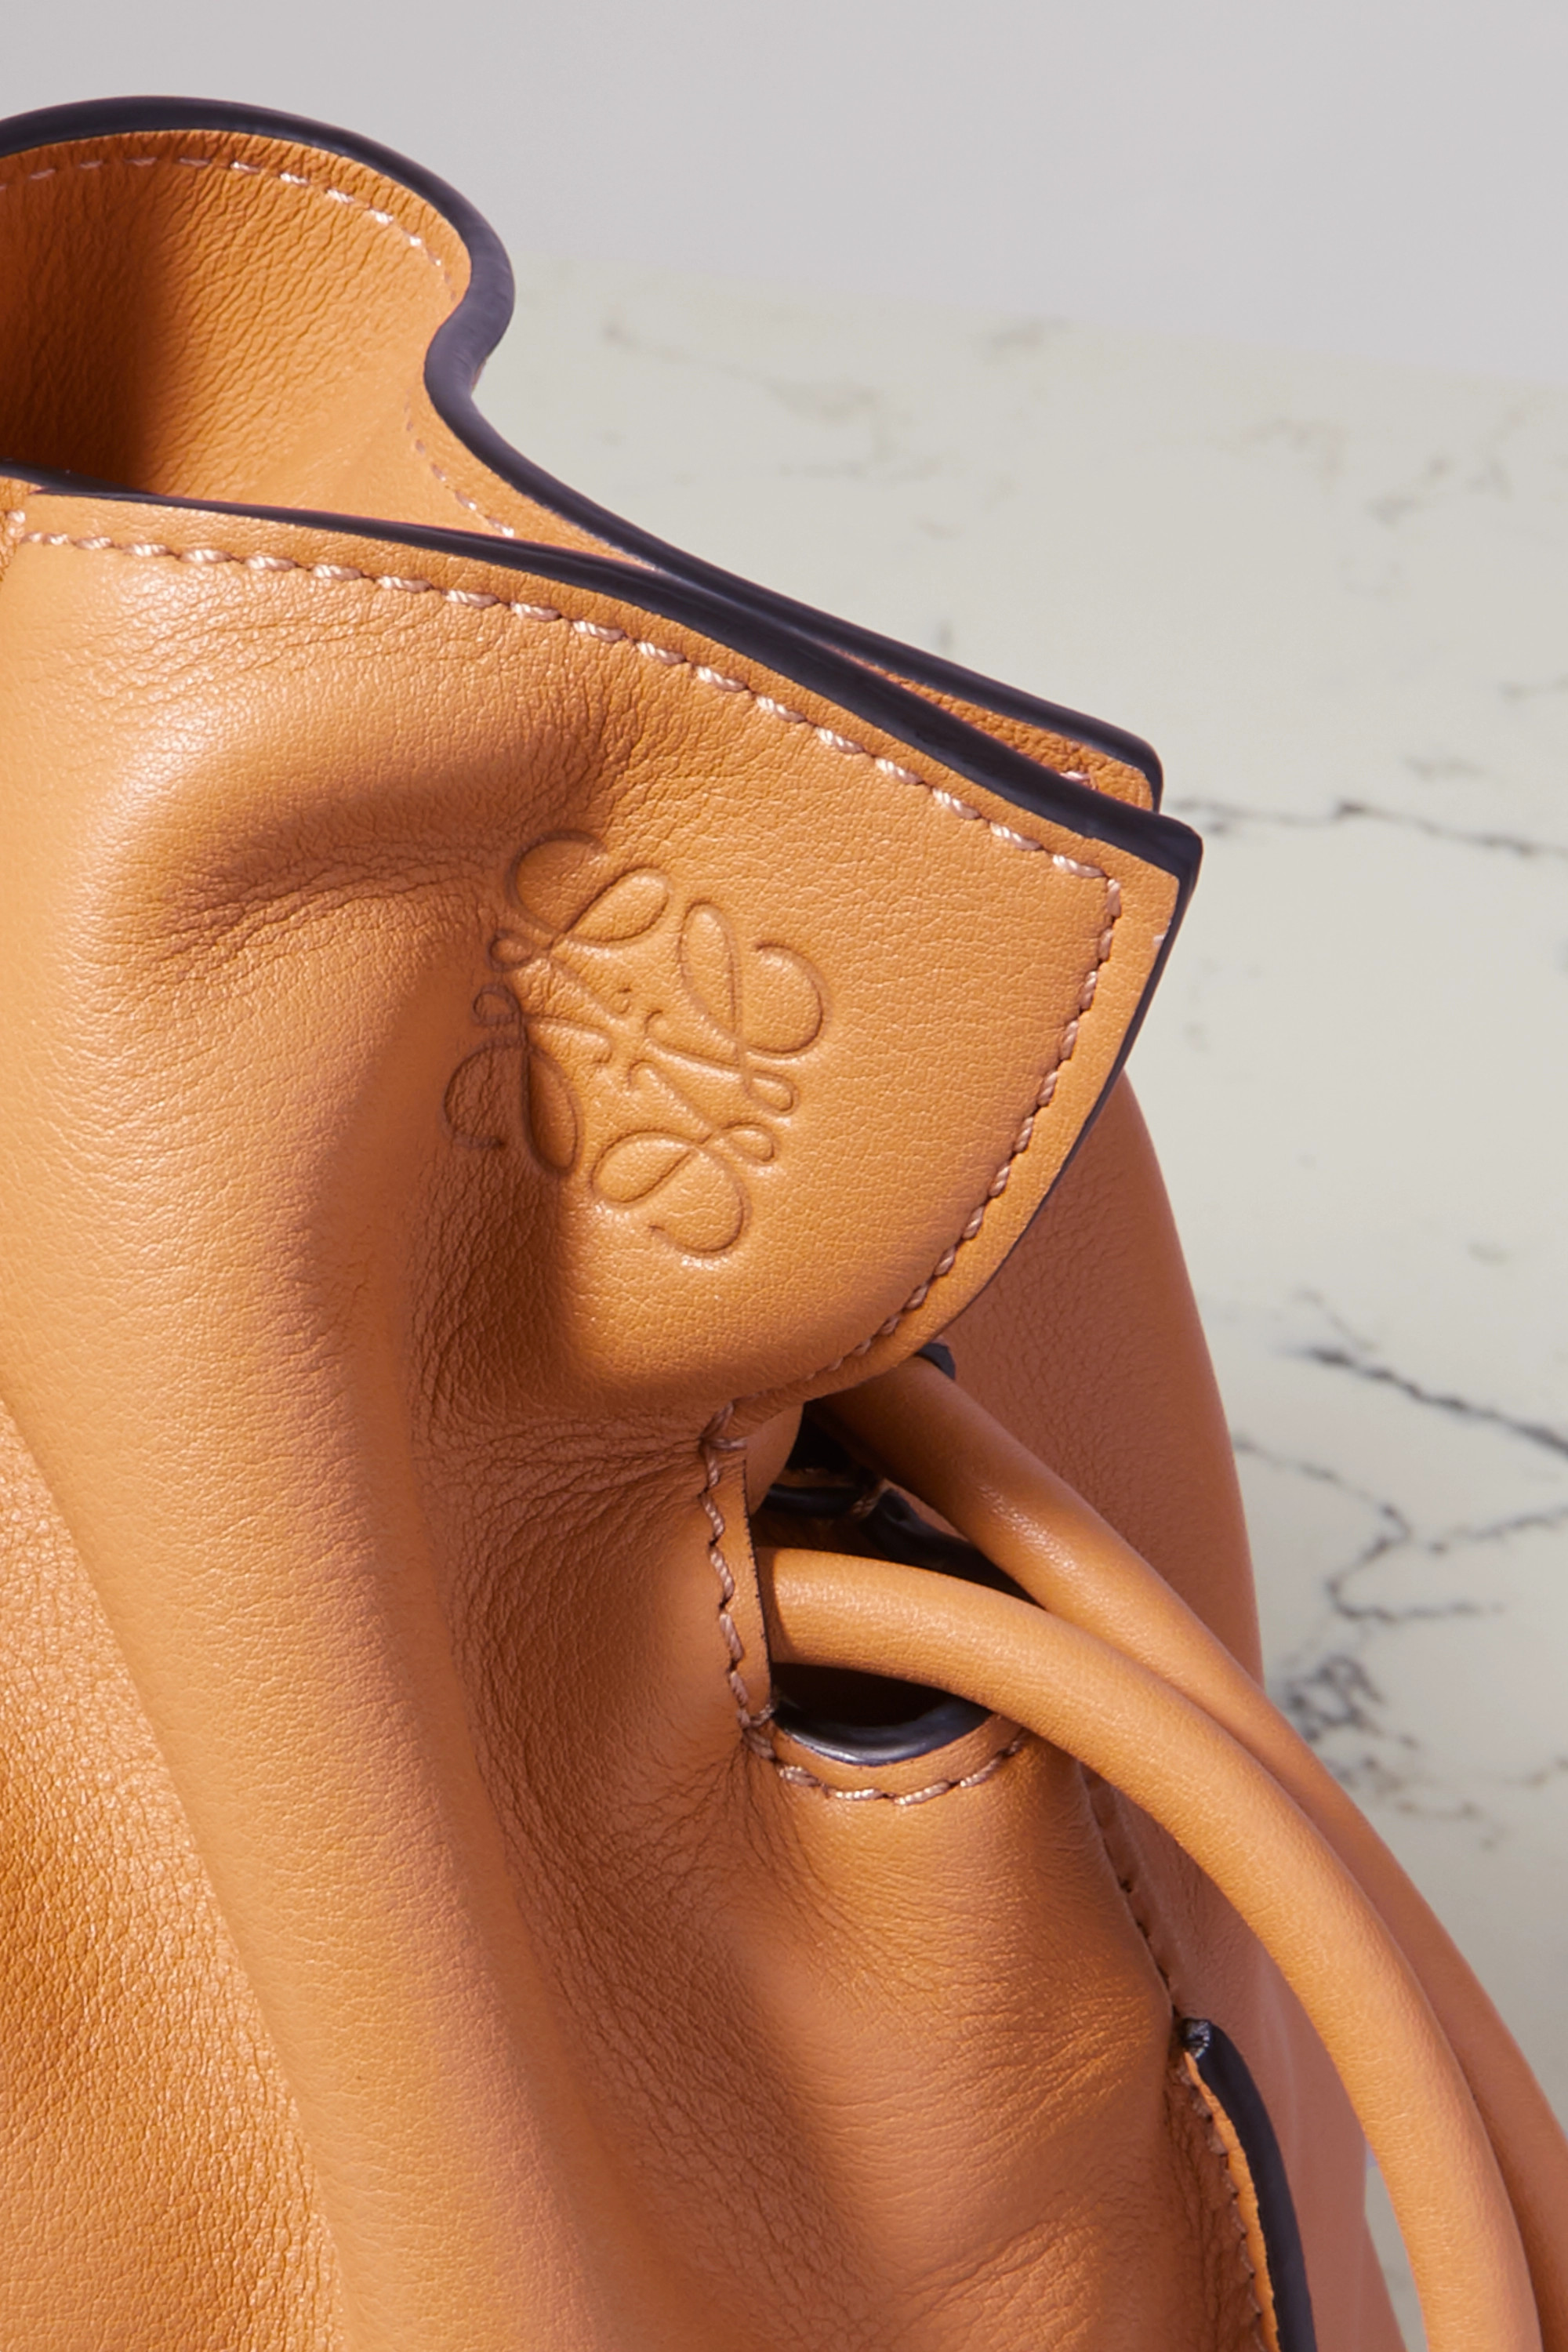 LOEWE Flamenco leather clutch